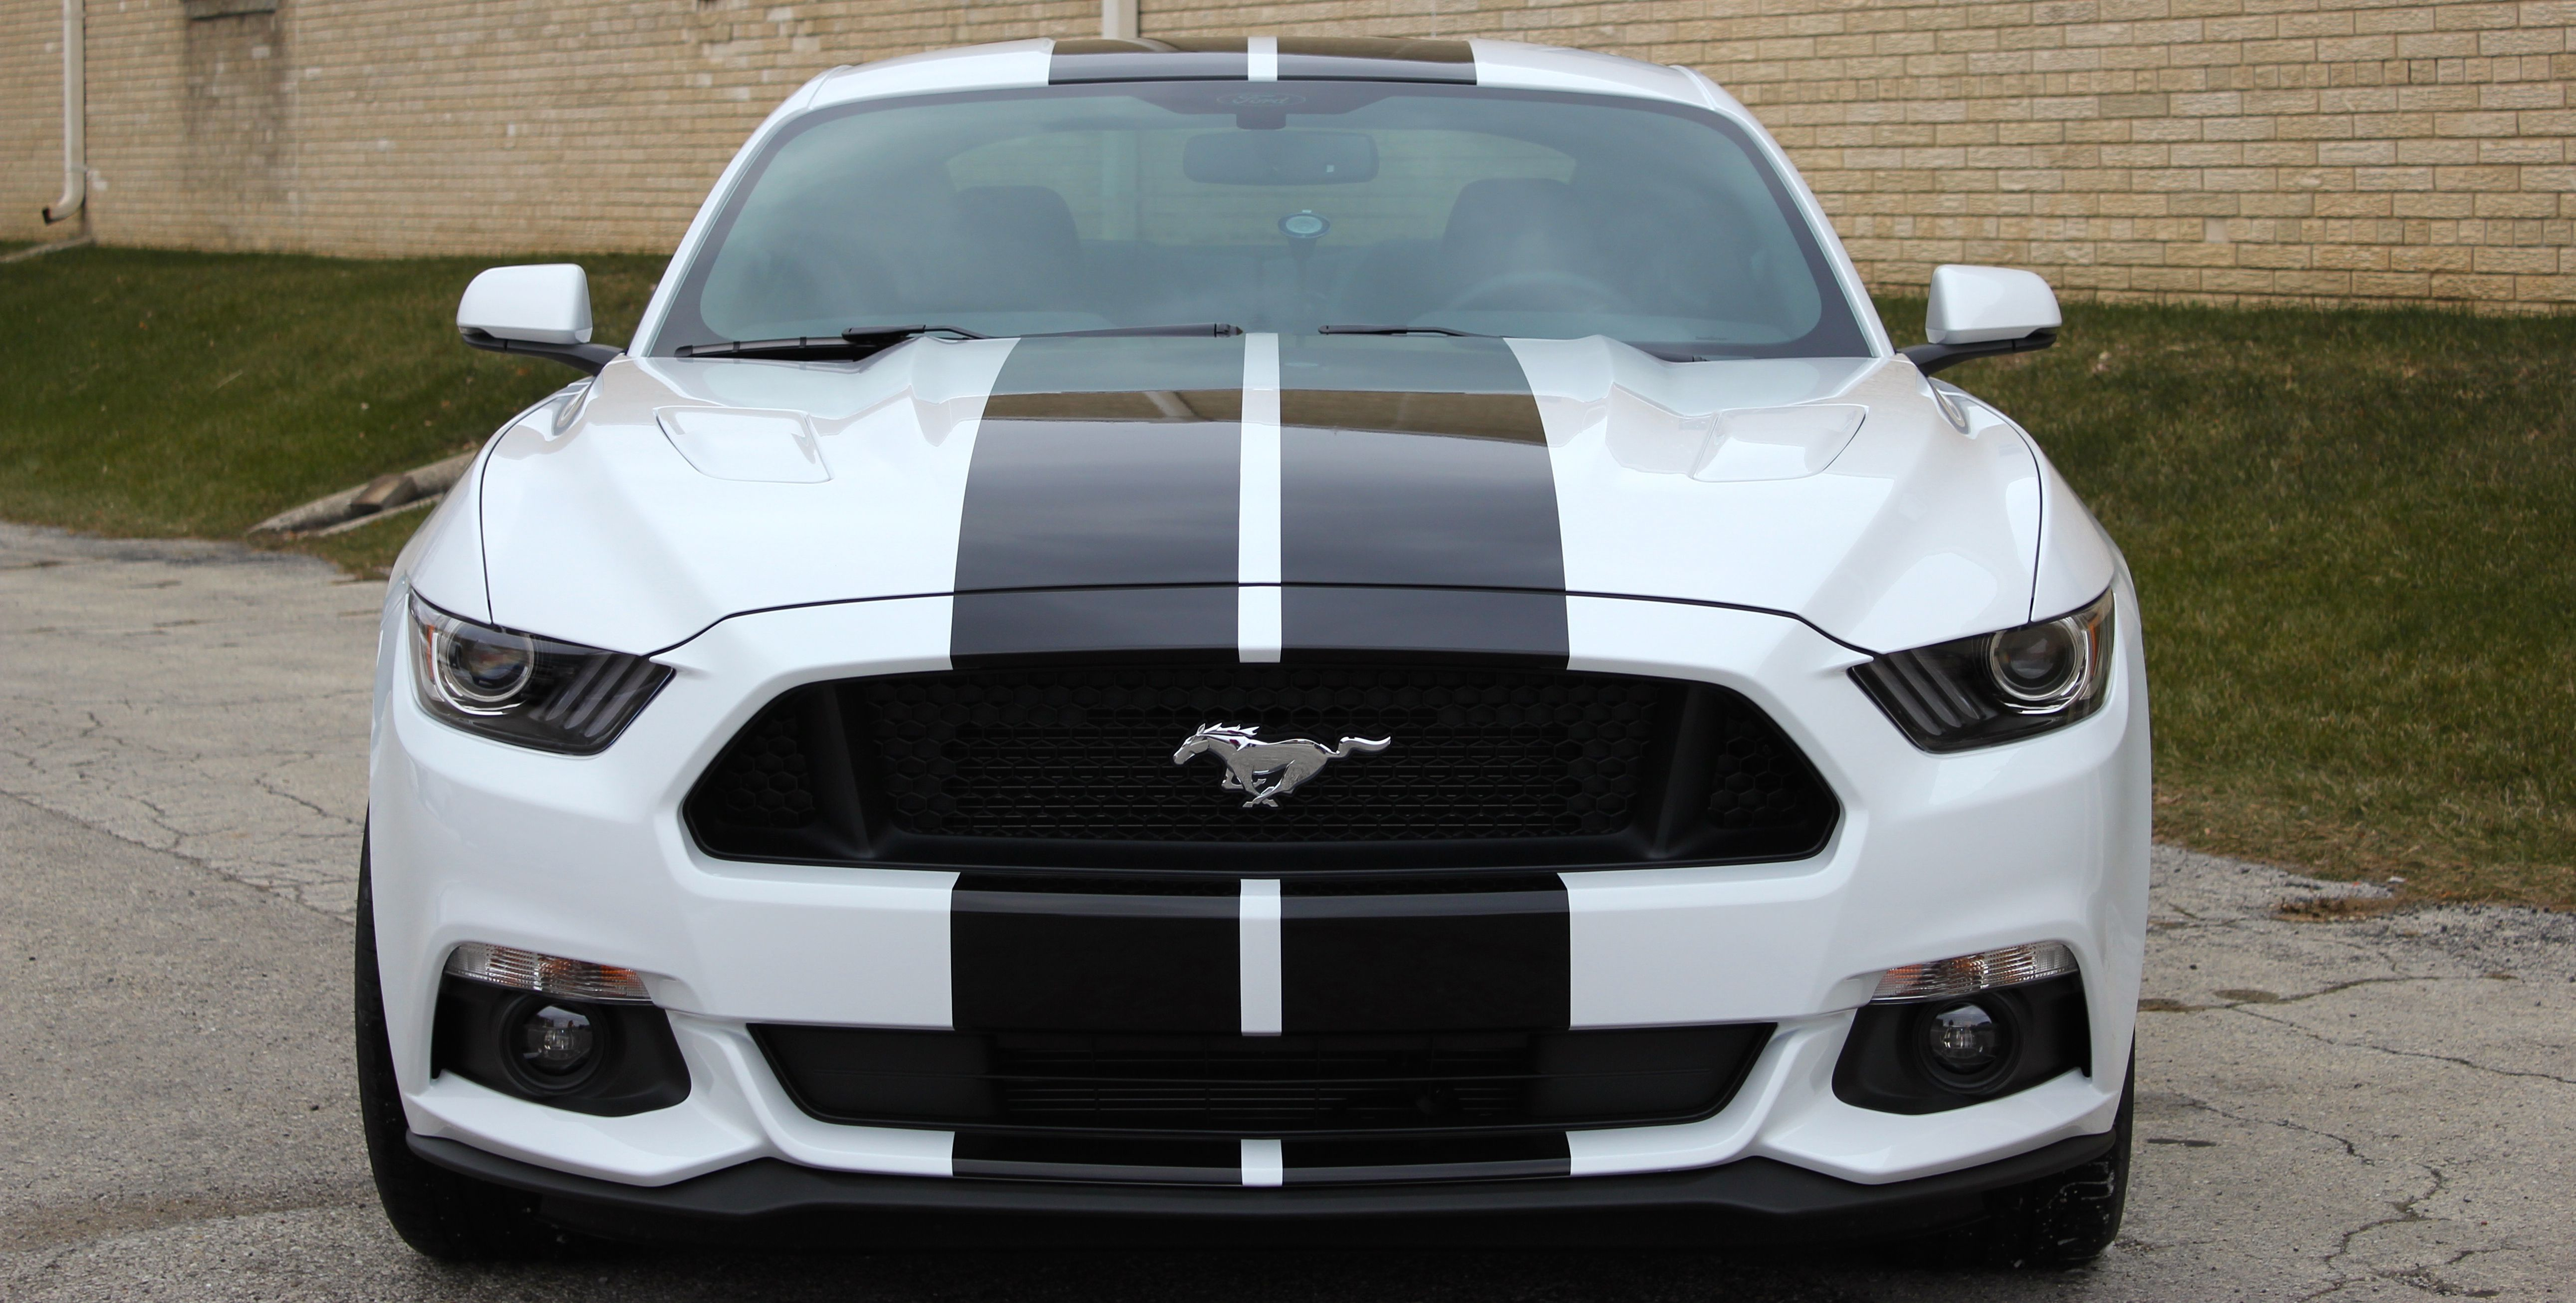 White mustang gt w black stripes front view